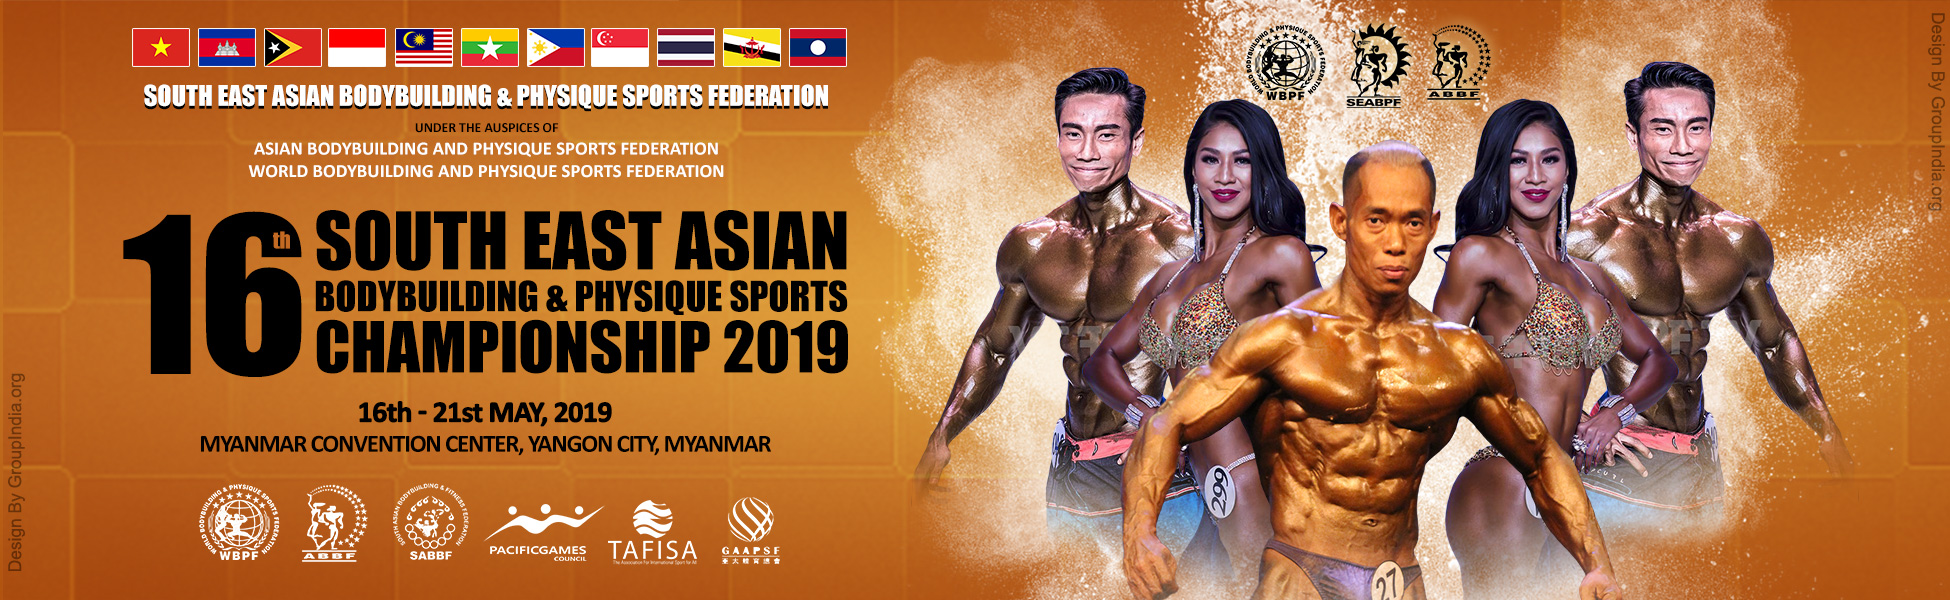 16th South East Asian Championship 2019